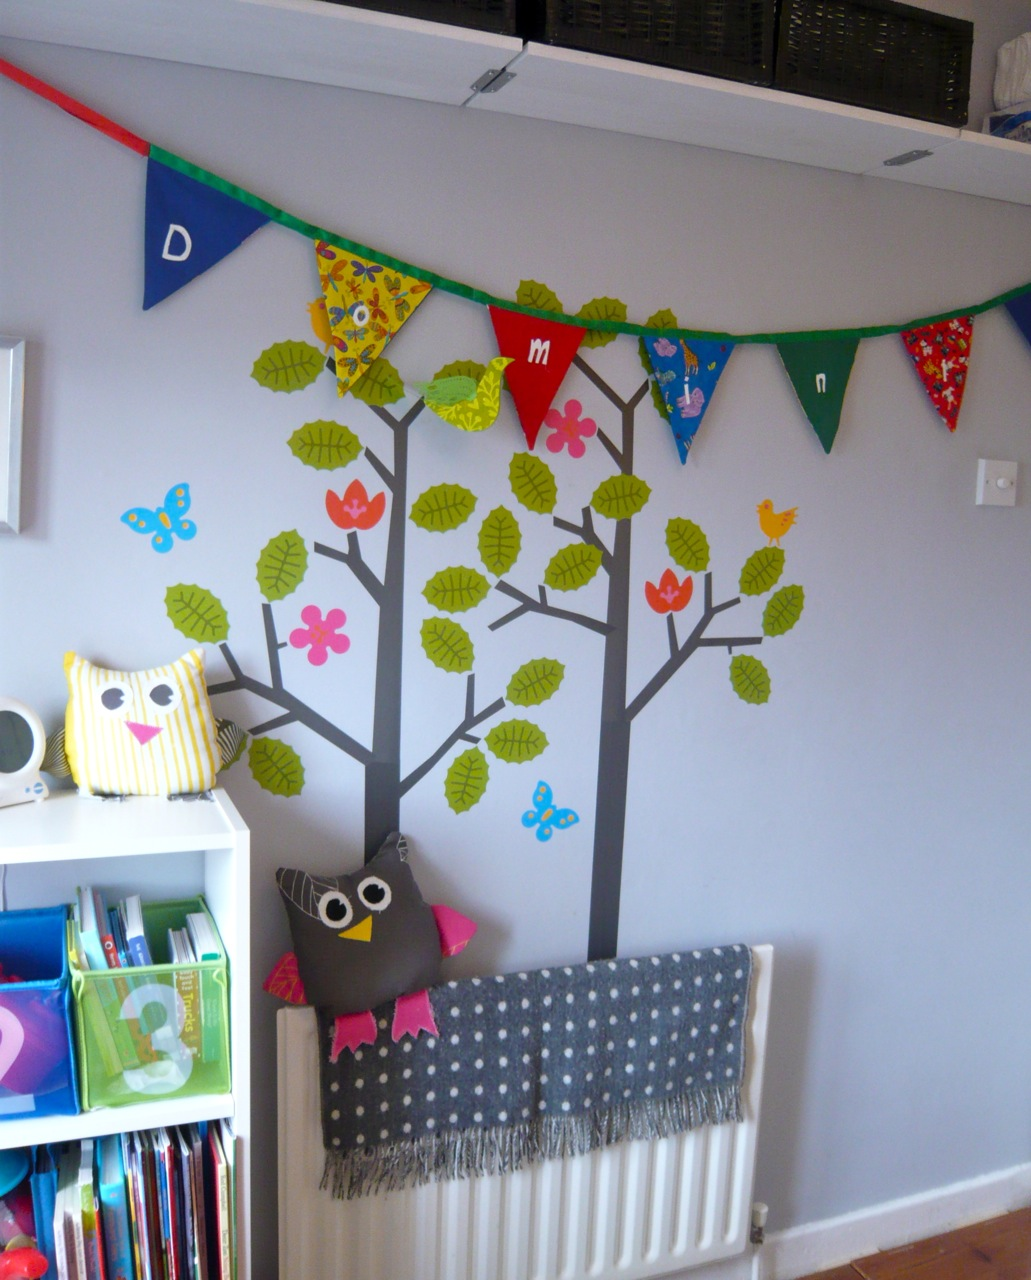 Wall decals babycribz wall sticker wallcandy arts seasons tree rug foxford baby rug bunting handmade by a friend for a present amipublicfo Image collections